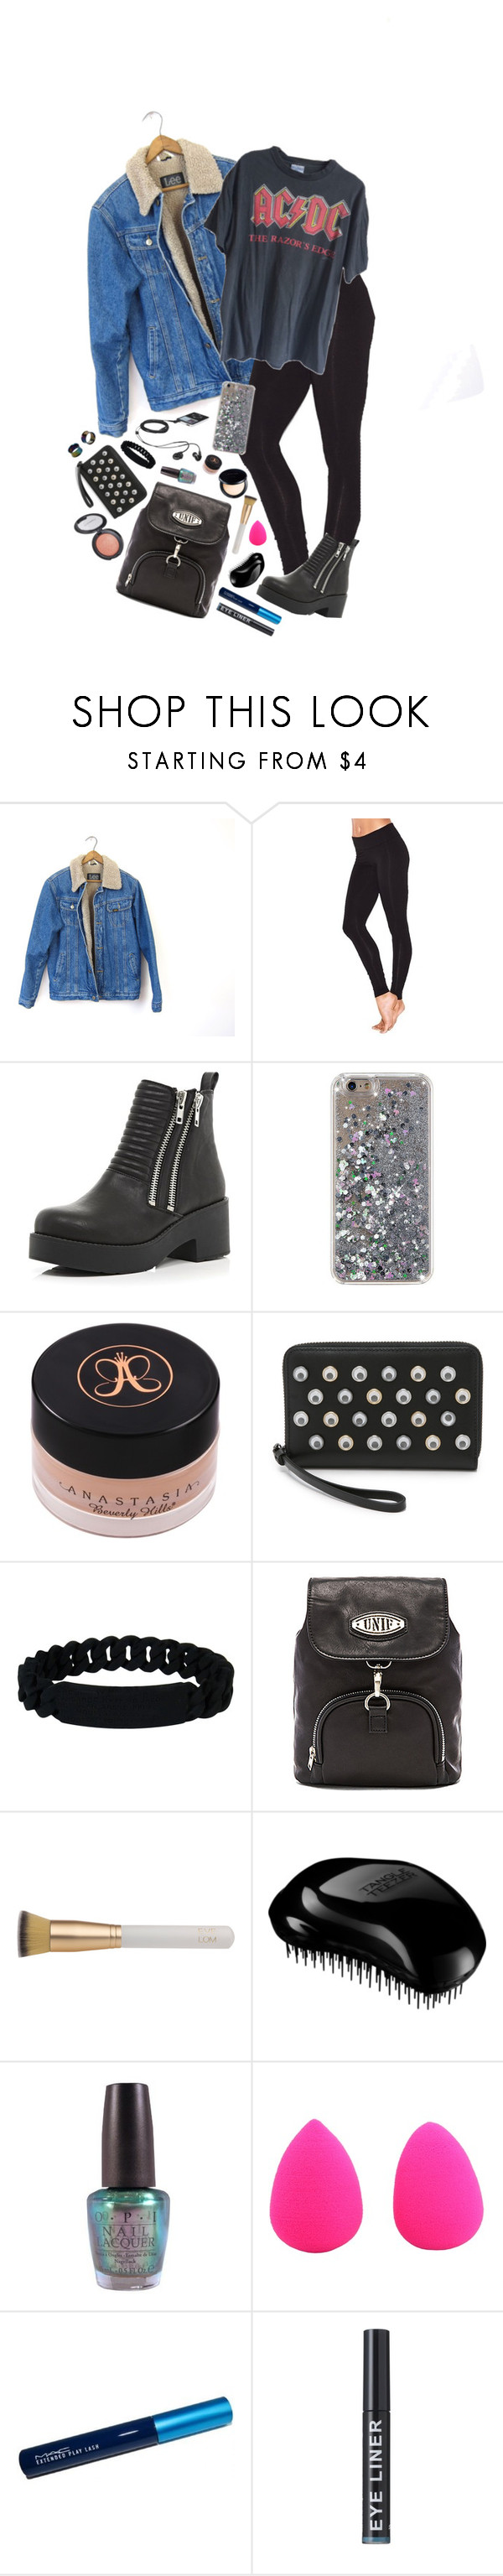 """Untitled #1060"" by giriboy97 ❤ liked on Polyvore featuring Victoria's Secret, River Island, Marc by Marc Jacobs, UNIF, Eve Lom, Tangle Teezer, OPI and beautyblender"